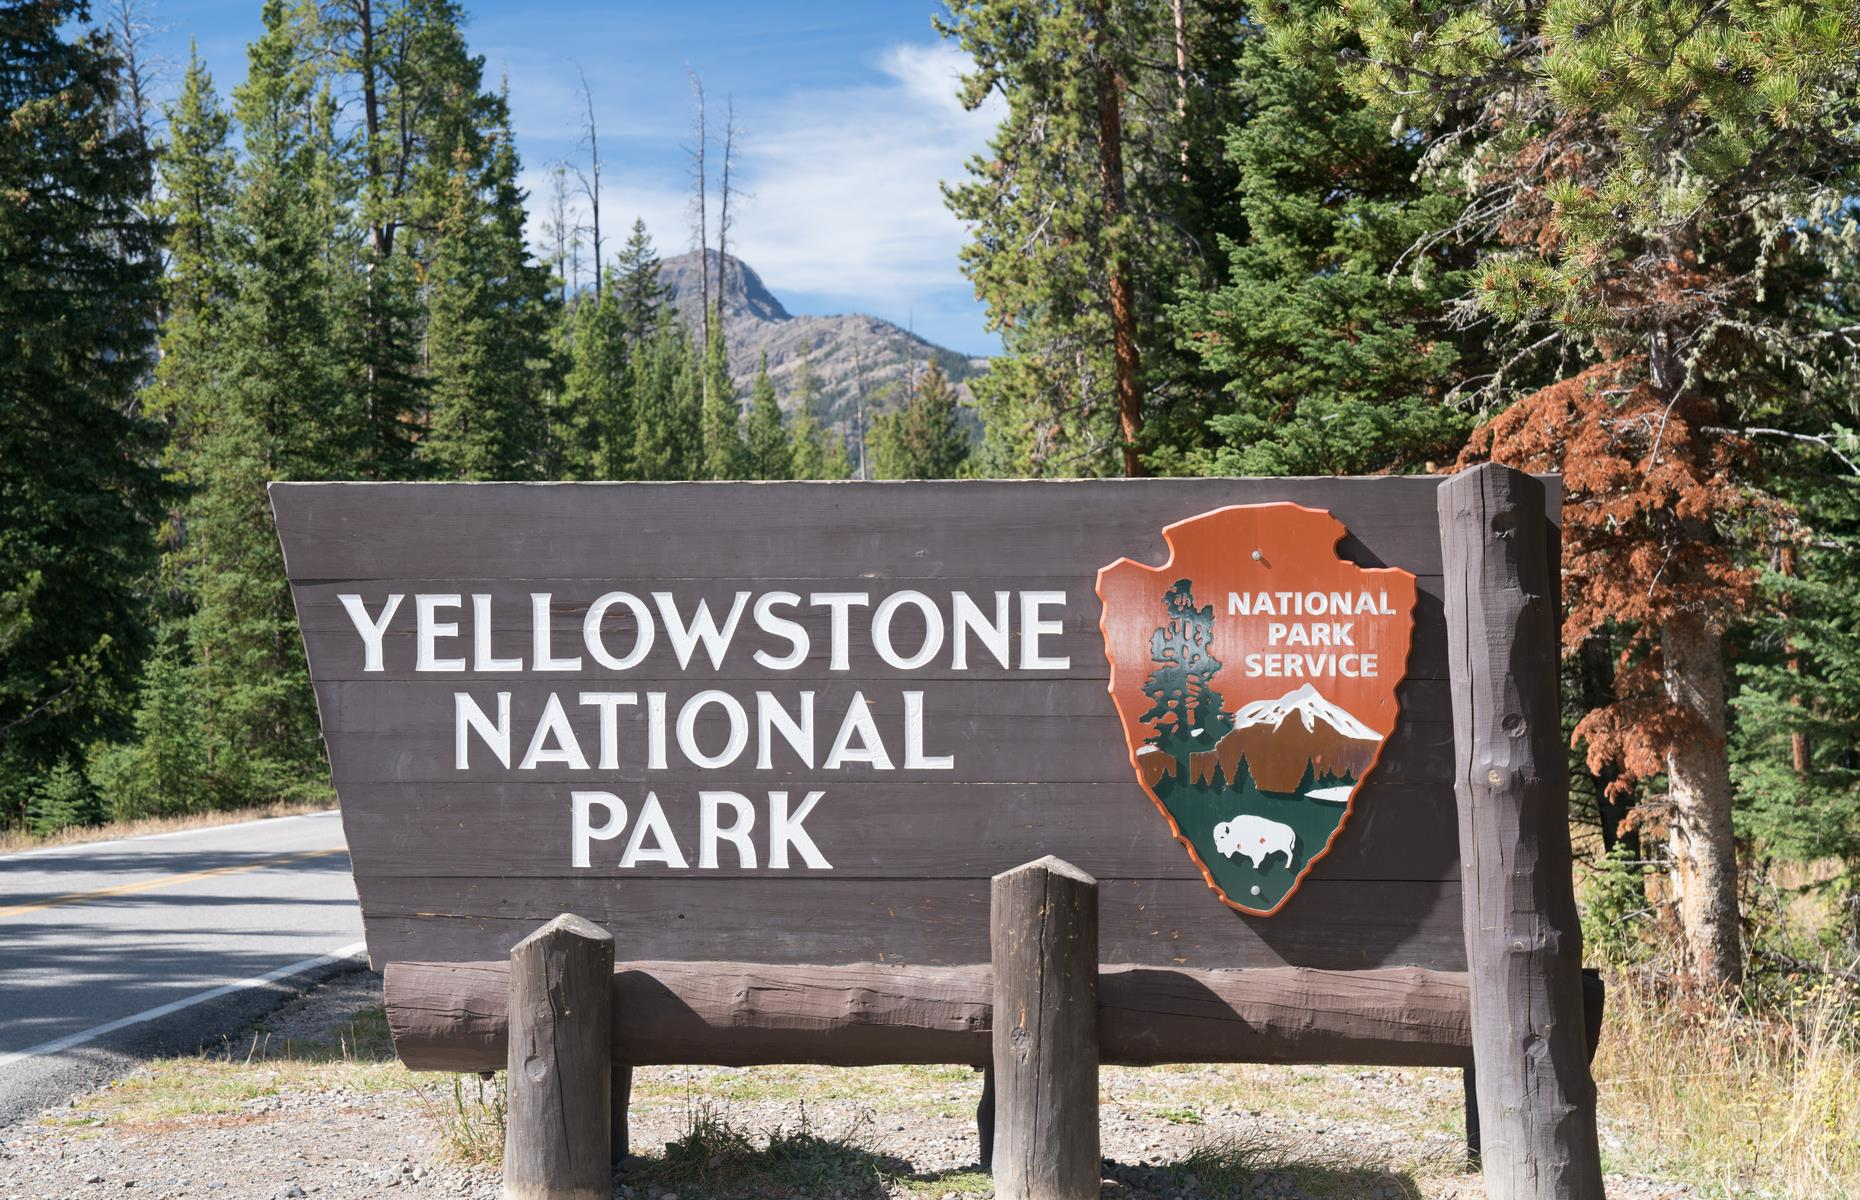 Slide 26 of 31: It may seem strange to have a sign on the list of historic landmarks, but the Northeast Entrance of Yellowstone National Park has a look so iconic it made the cut. The rustic, log cabin-like welcome sign for this gate has become synonymous with American national parks – and is a must-stop for pictures for the park's four-million-plus visitors every year.